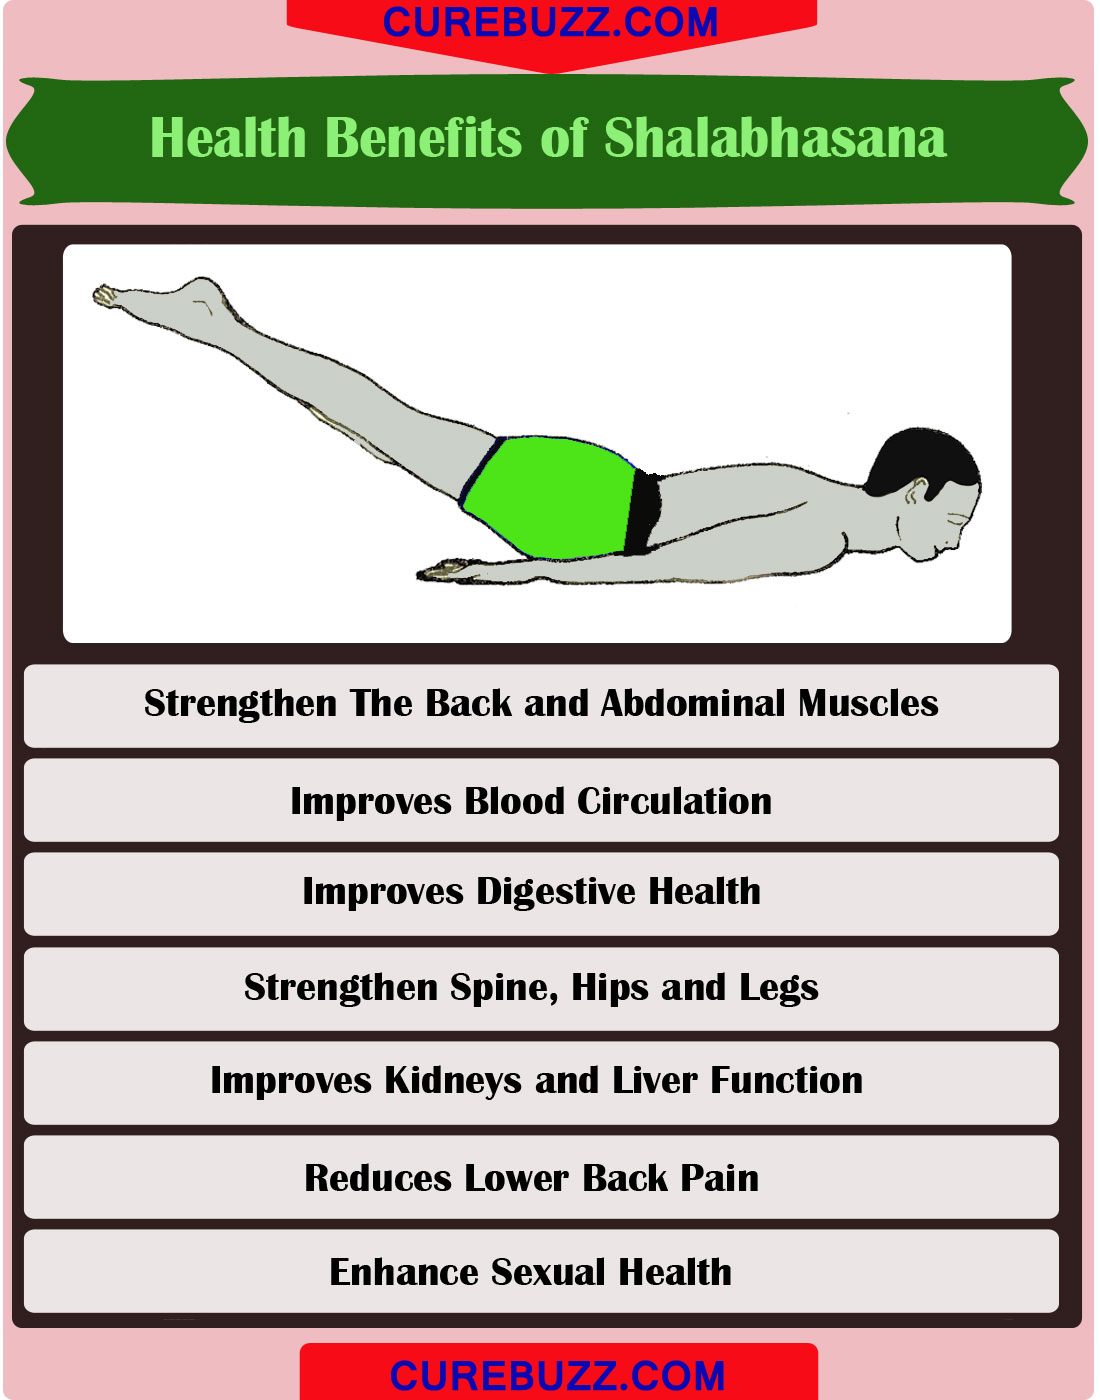 Health benefits of Shalabhasana